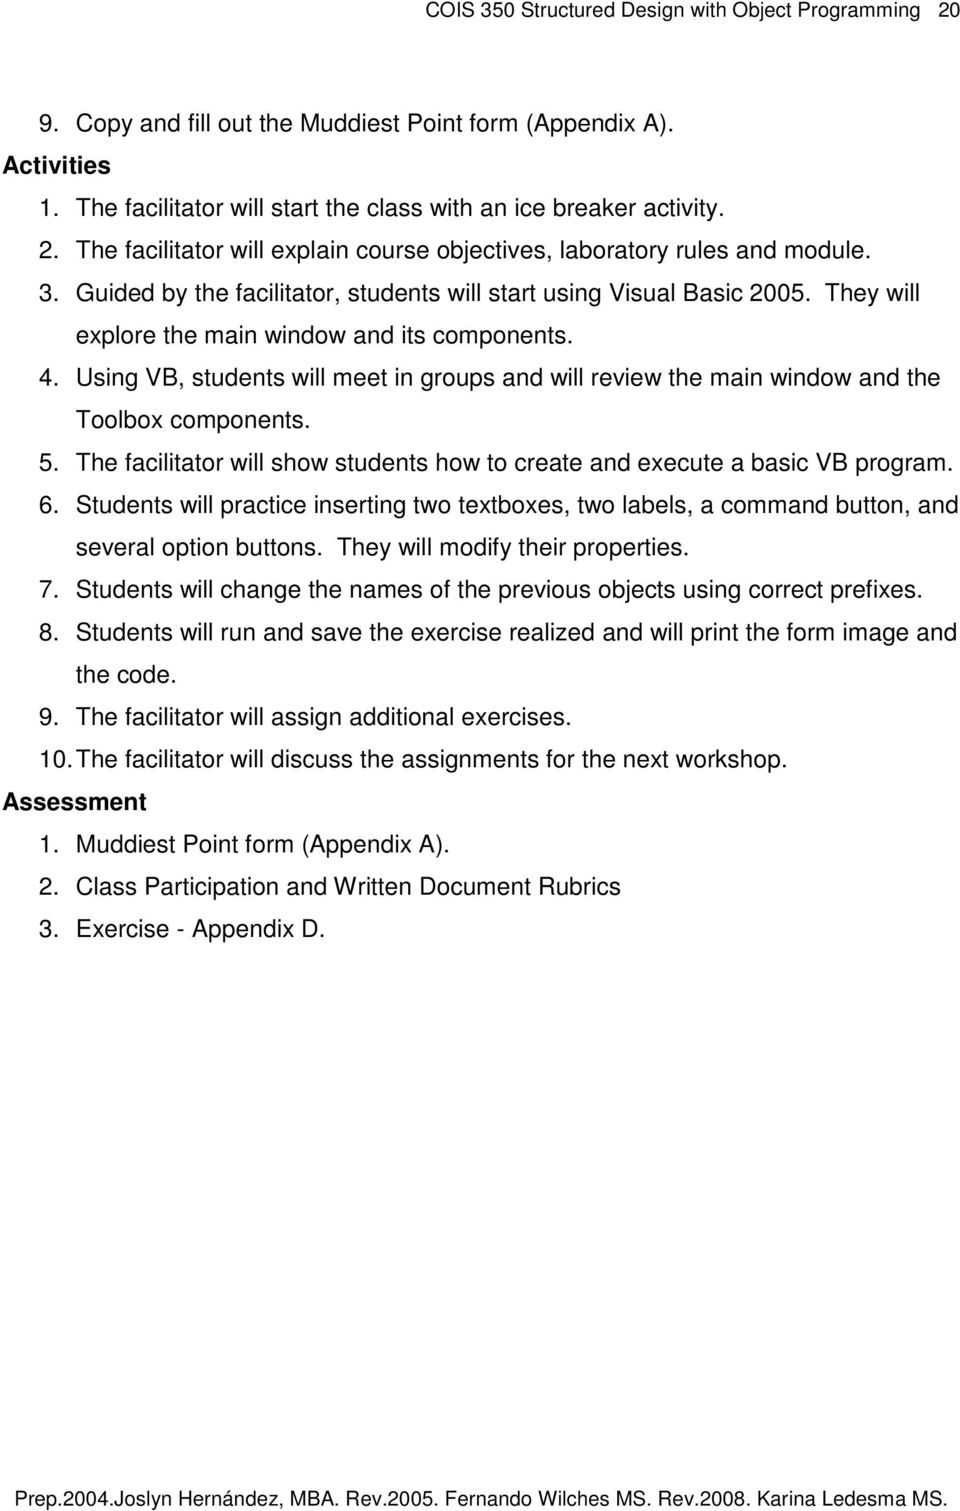 Using VB, students will meet in groups and will review the main window and the Toolbox components. 5. The facilitator will show students how to create and execute a basic VB program. 6.